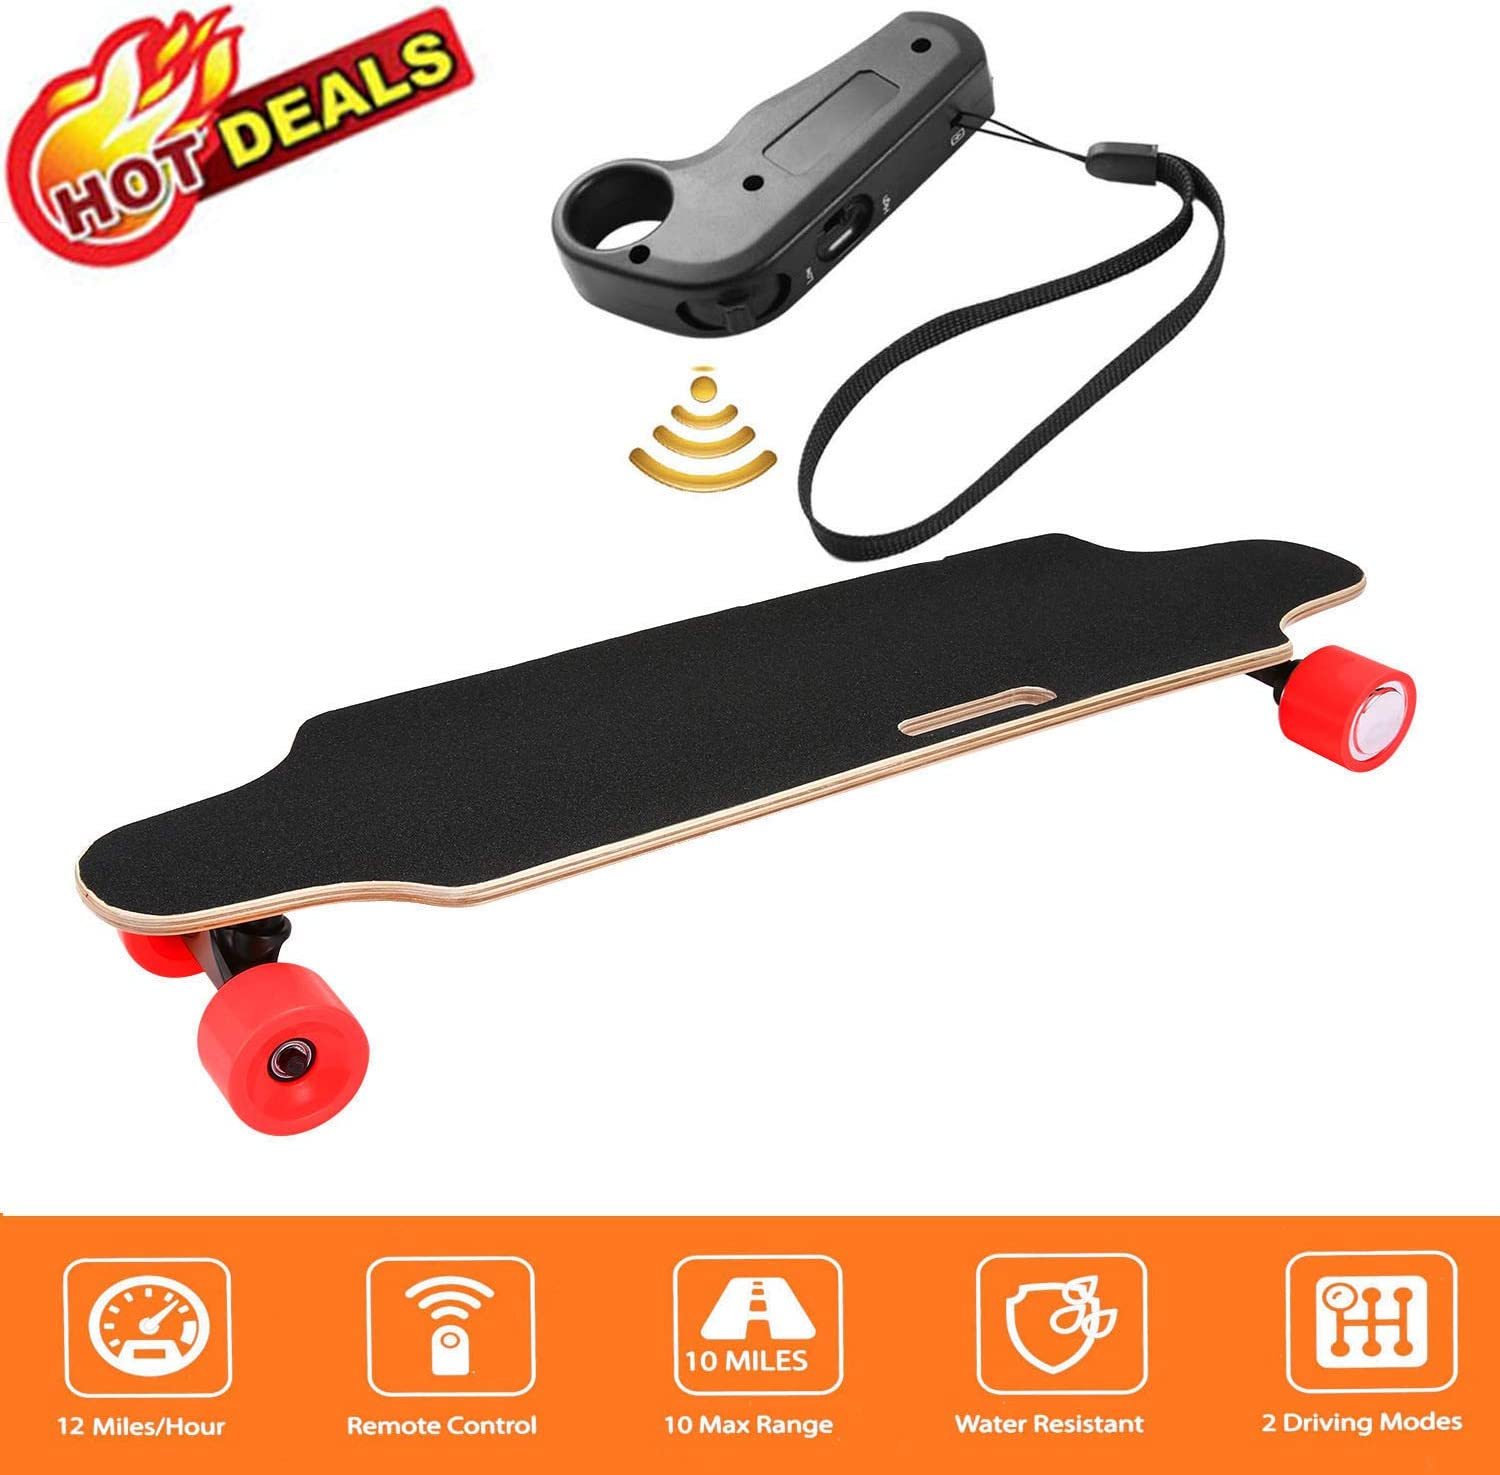 Aceshin Electric Skateboard with Remote Control for Adults Teens Youths 250W Dual Motor 20KM H Top Speed 10 KM Range Longboard 7 Layers Maple Waterproof IP54 E-Skateboard